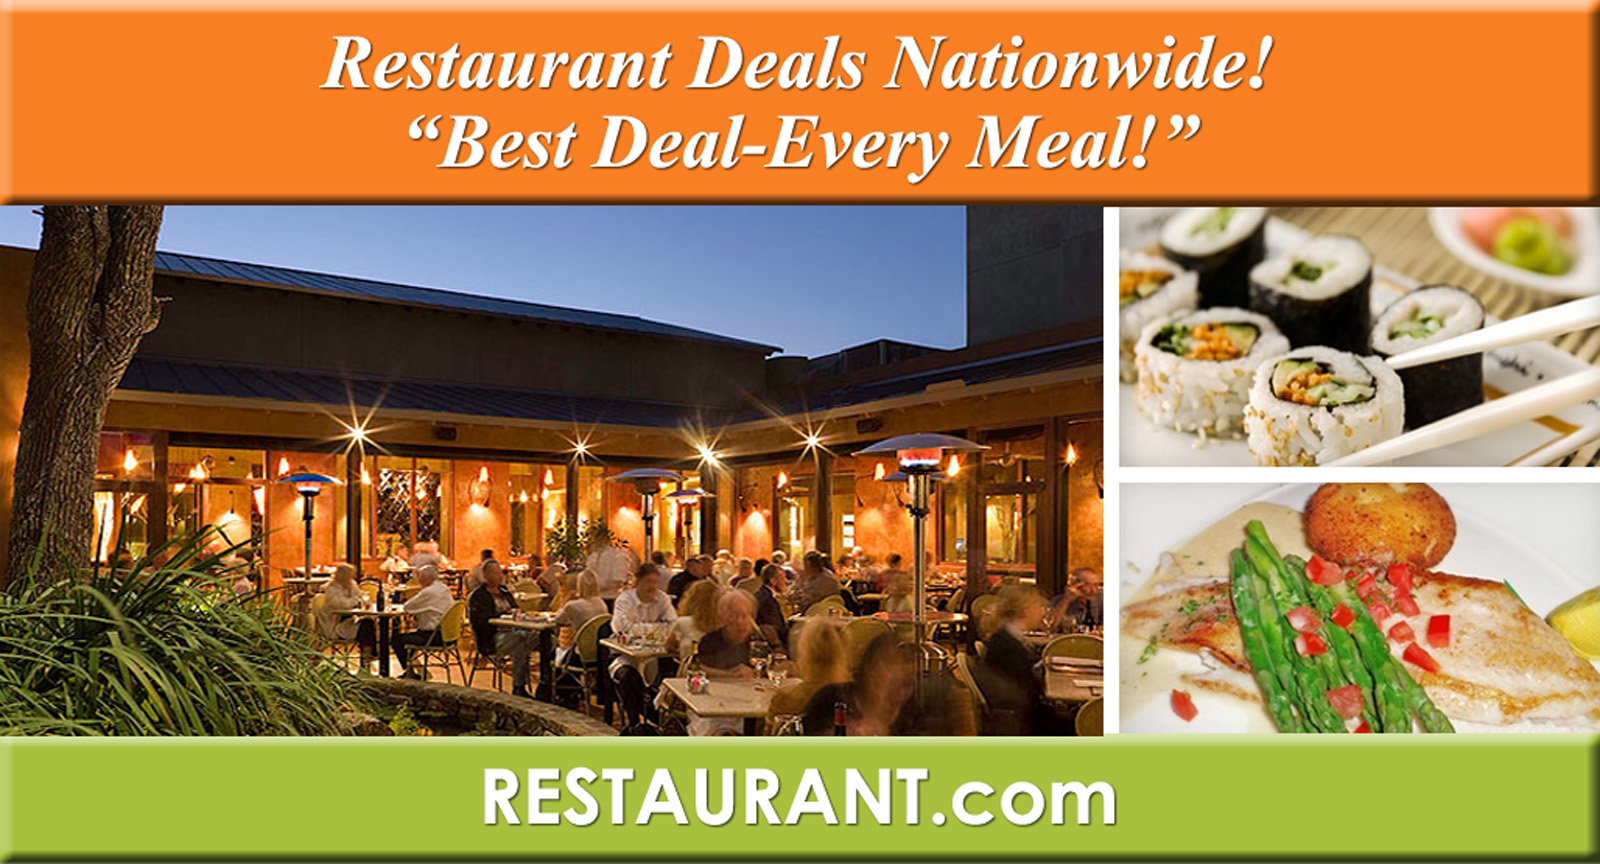 restaurant-deals-nationwide-best-deal-every-meal-restaurant-dot-com-dollar-restaurants